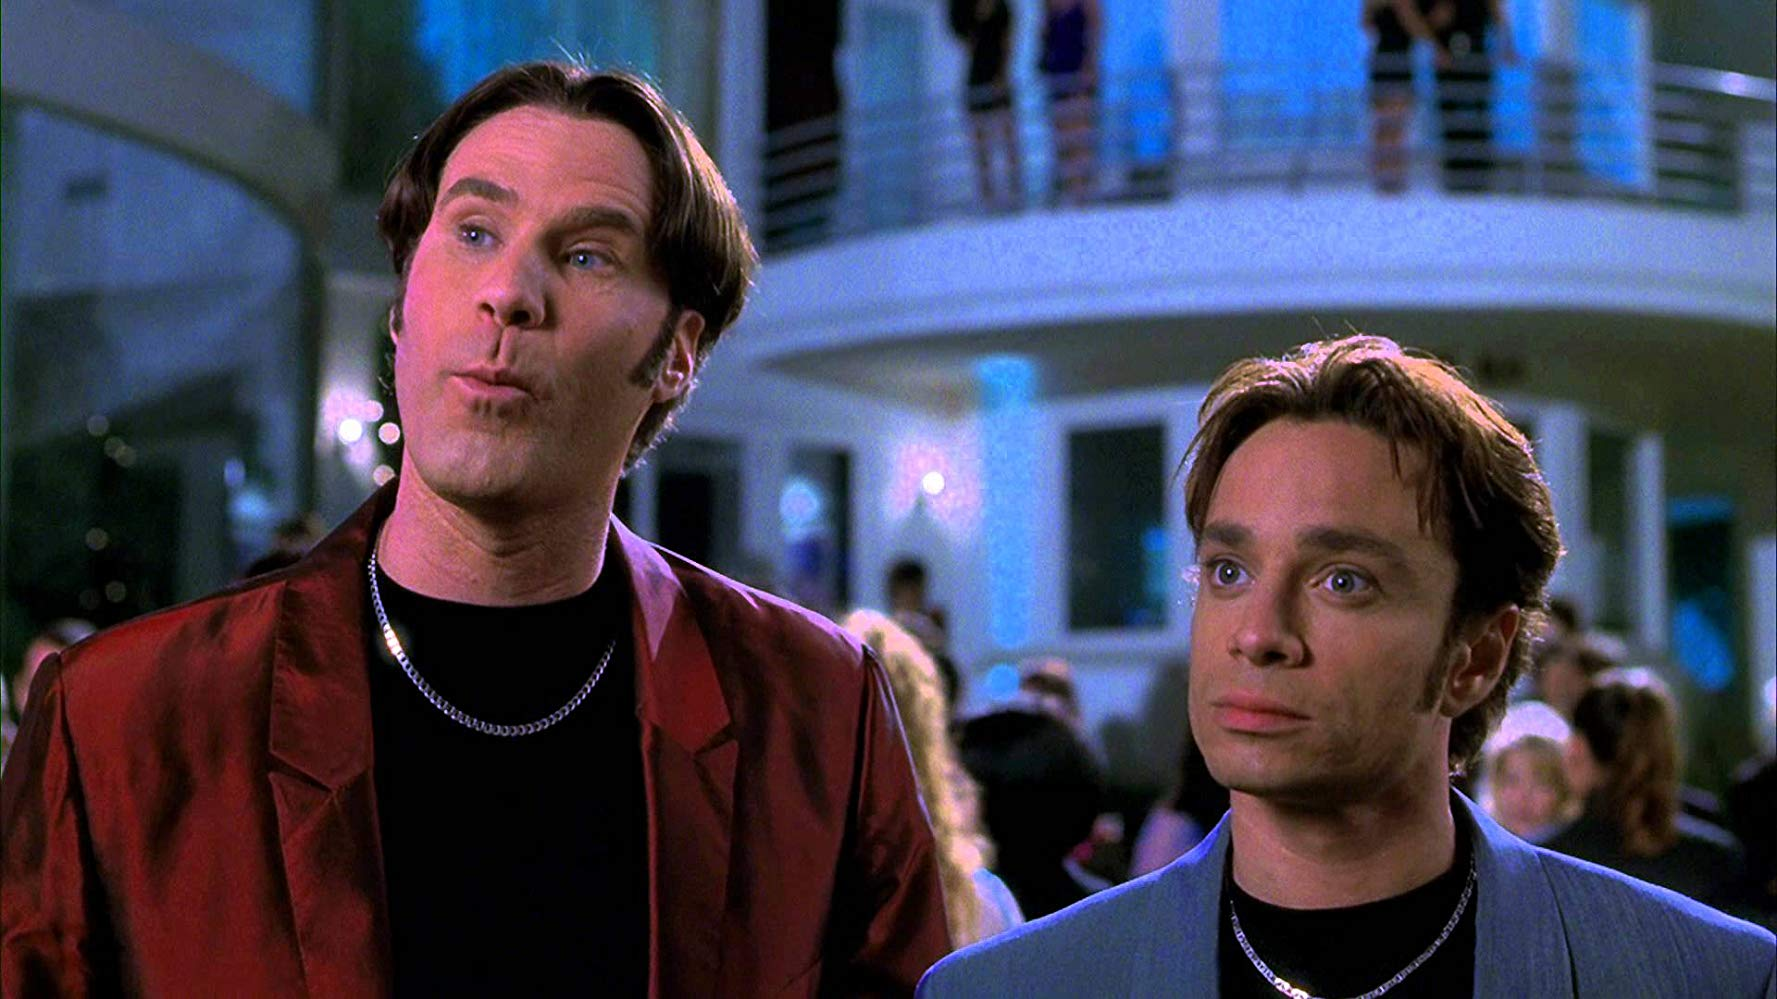 Will Ferrell (left) and Chris Kattan (right) in A Night at the Roxbury